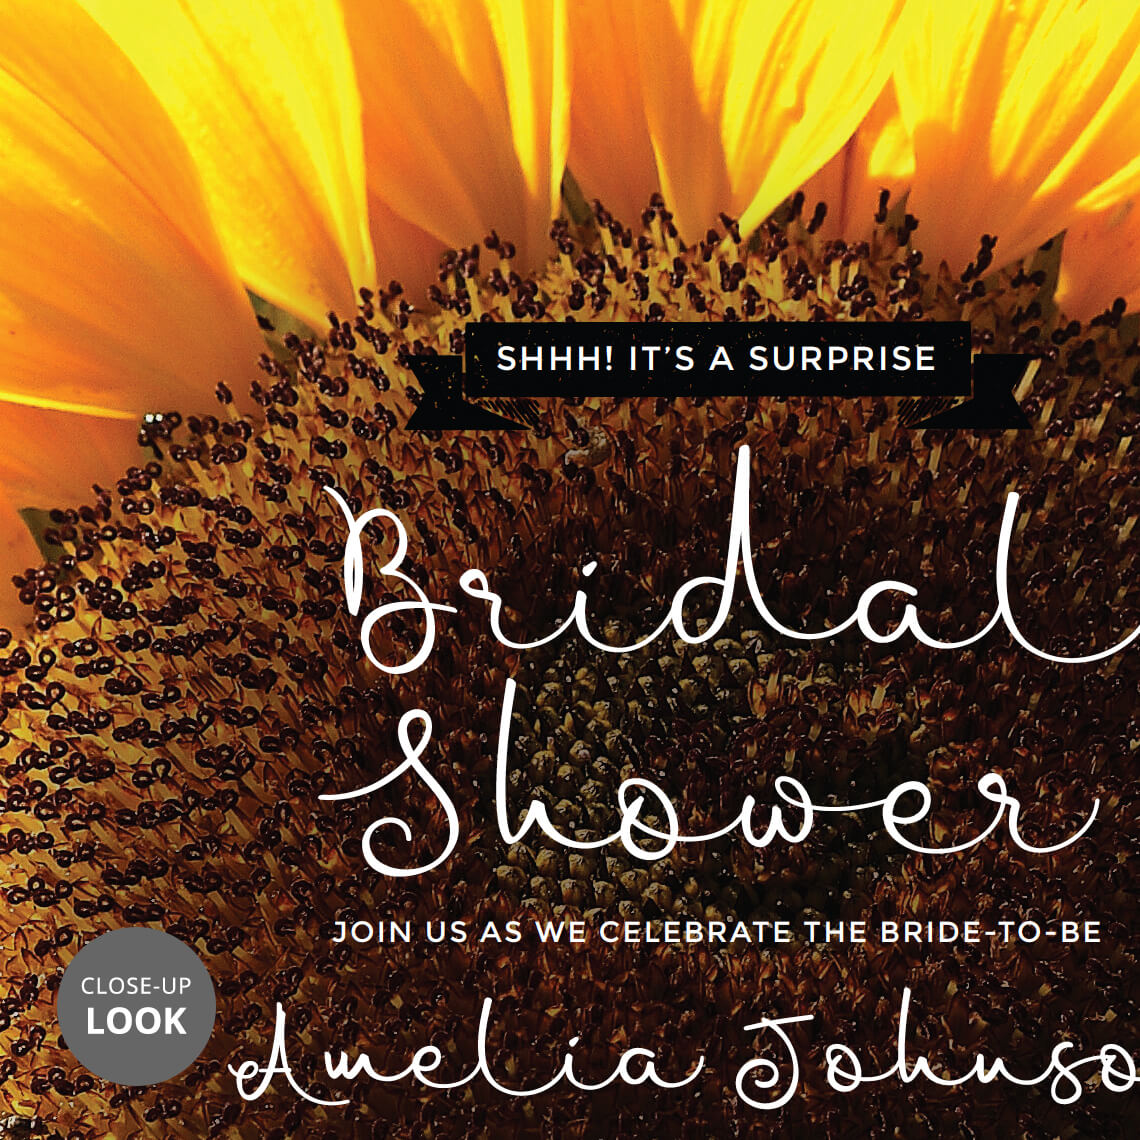 Sunflower Wedding Invitations Kits was awesome invitations design